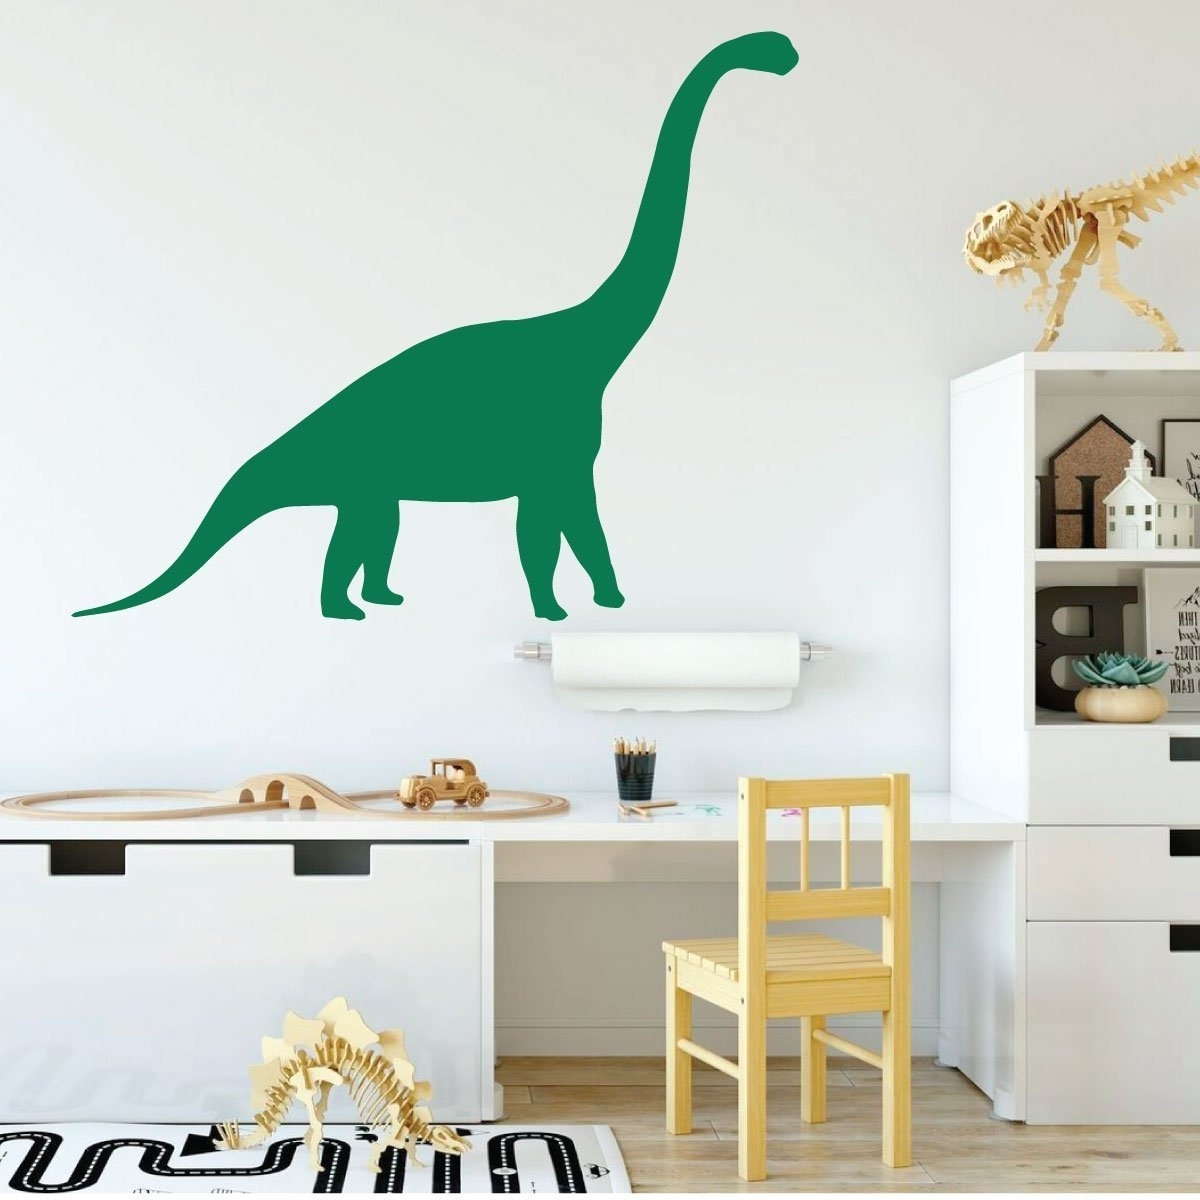 Panfan Site With Well Known Beetling Brachiosaurus Dinosaur 3D Wall Art (View 9 of 10)